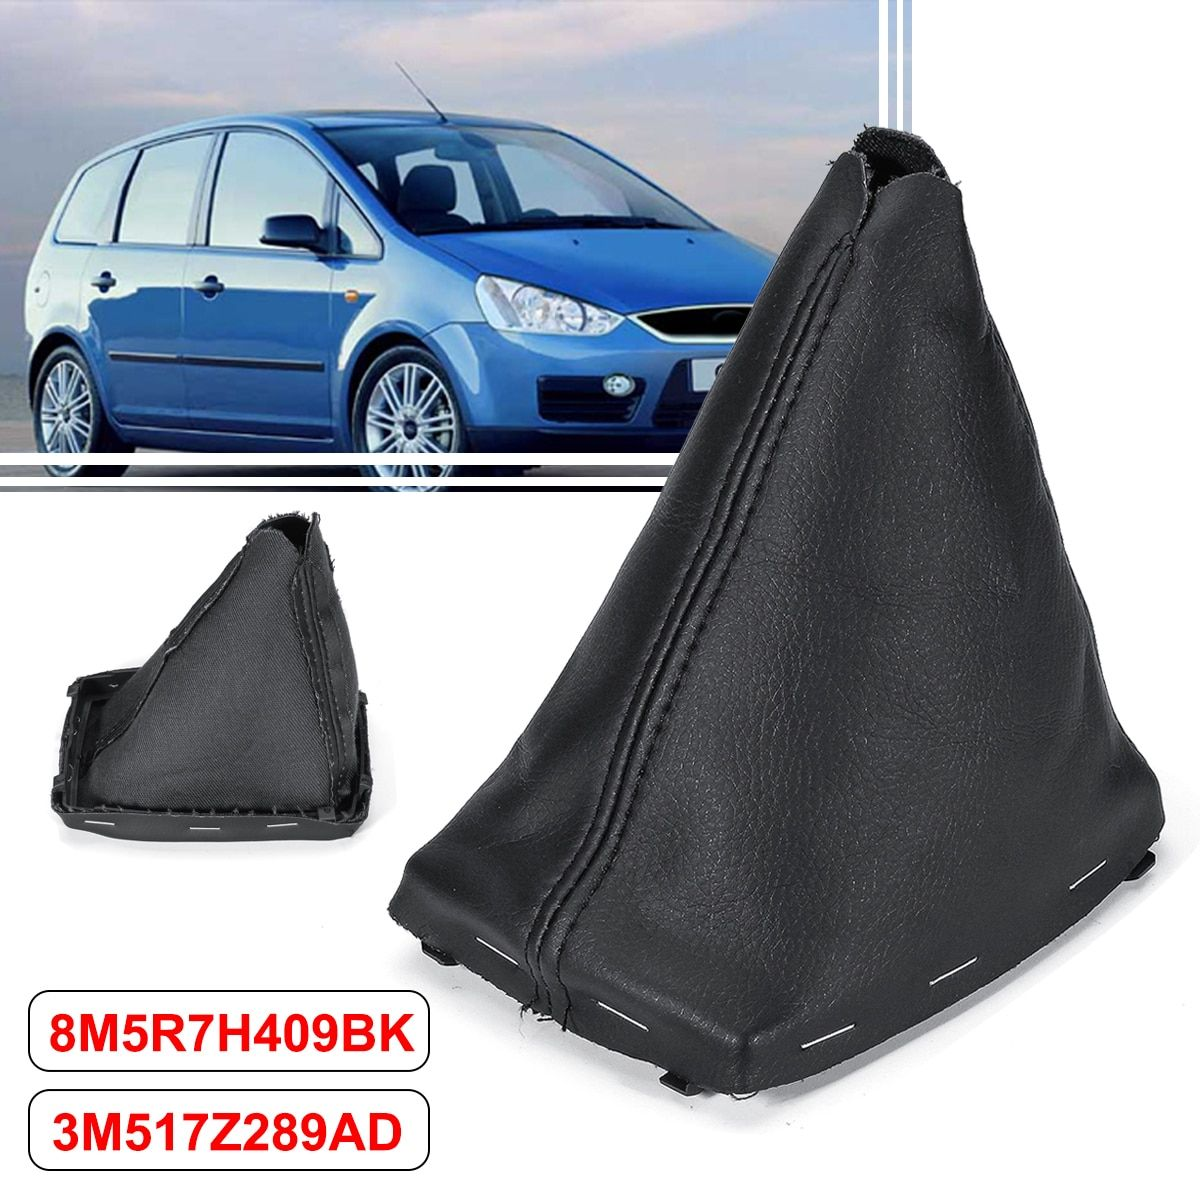 PU Leather Car Gear Shift Collars Gaiter Boot Cover For Ford/C-Max 2007-2010 /Focus/C-Max 2003-2007